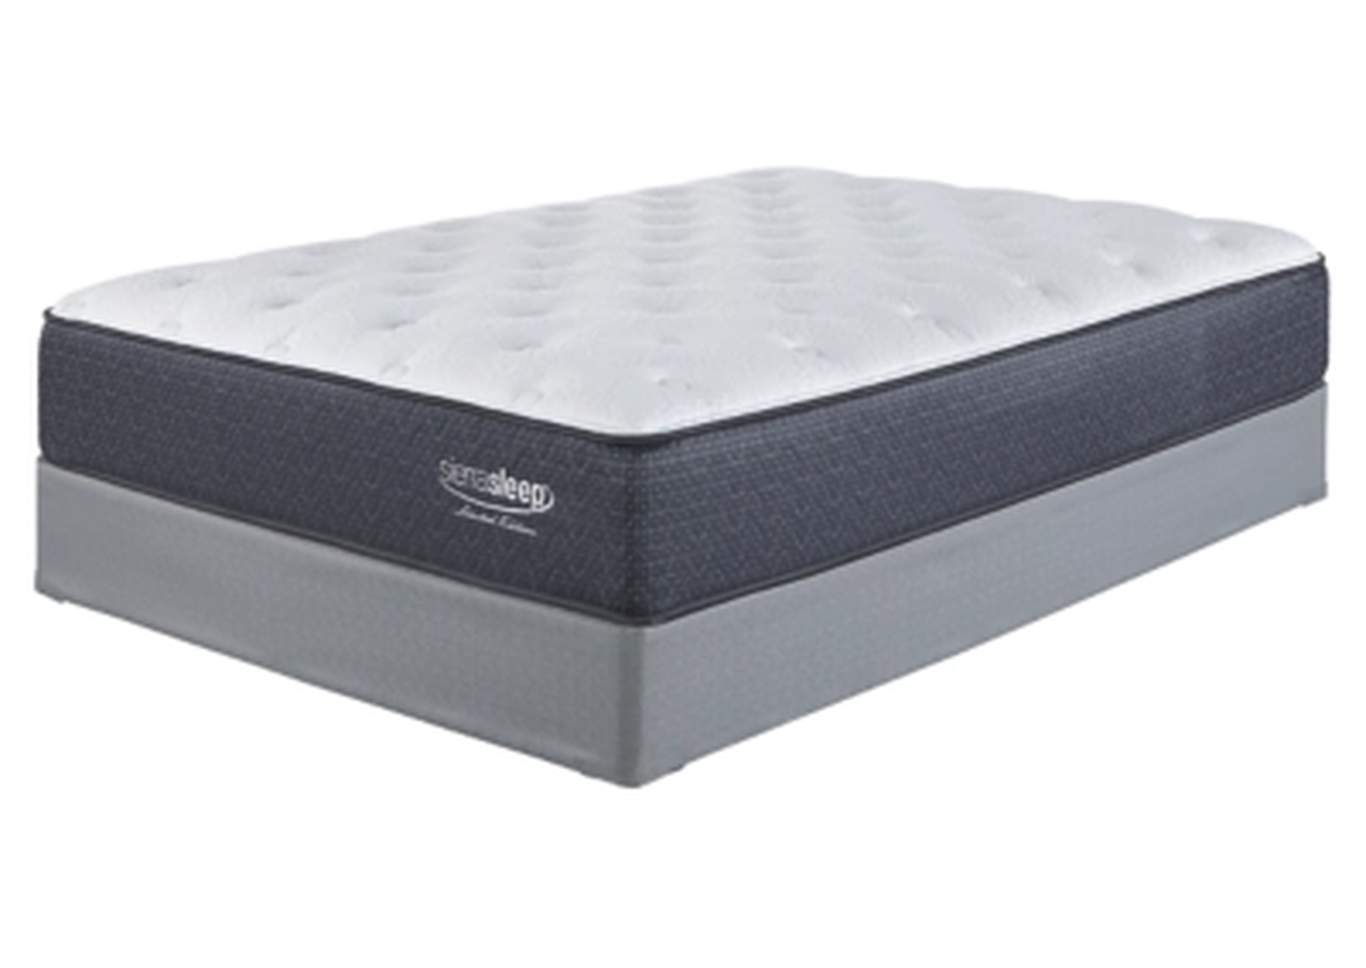 Limited Edition Plush White Twin Mattress,Sierra Sleep by Ashley